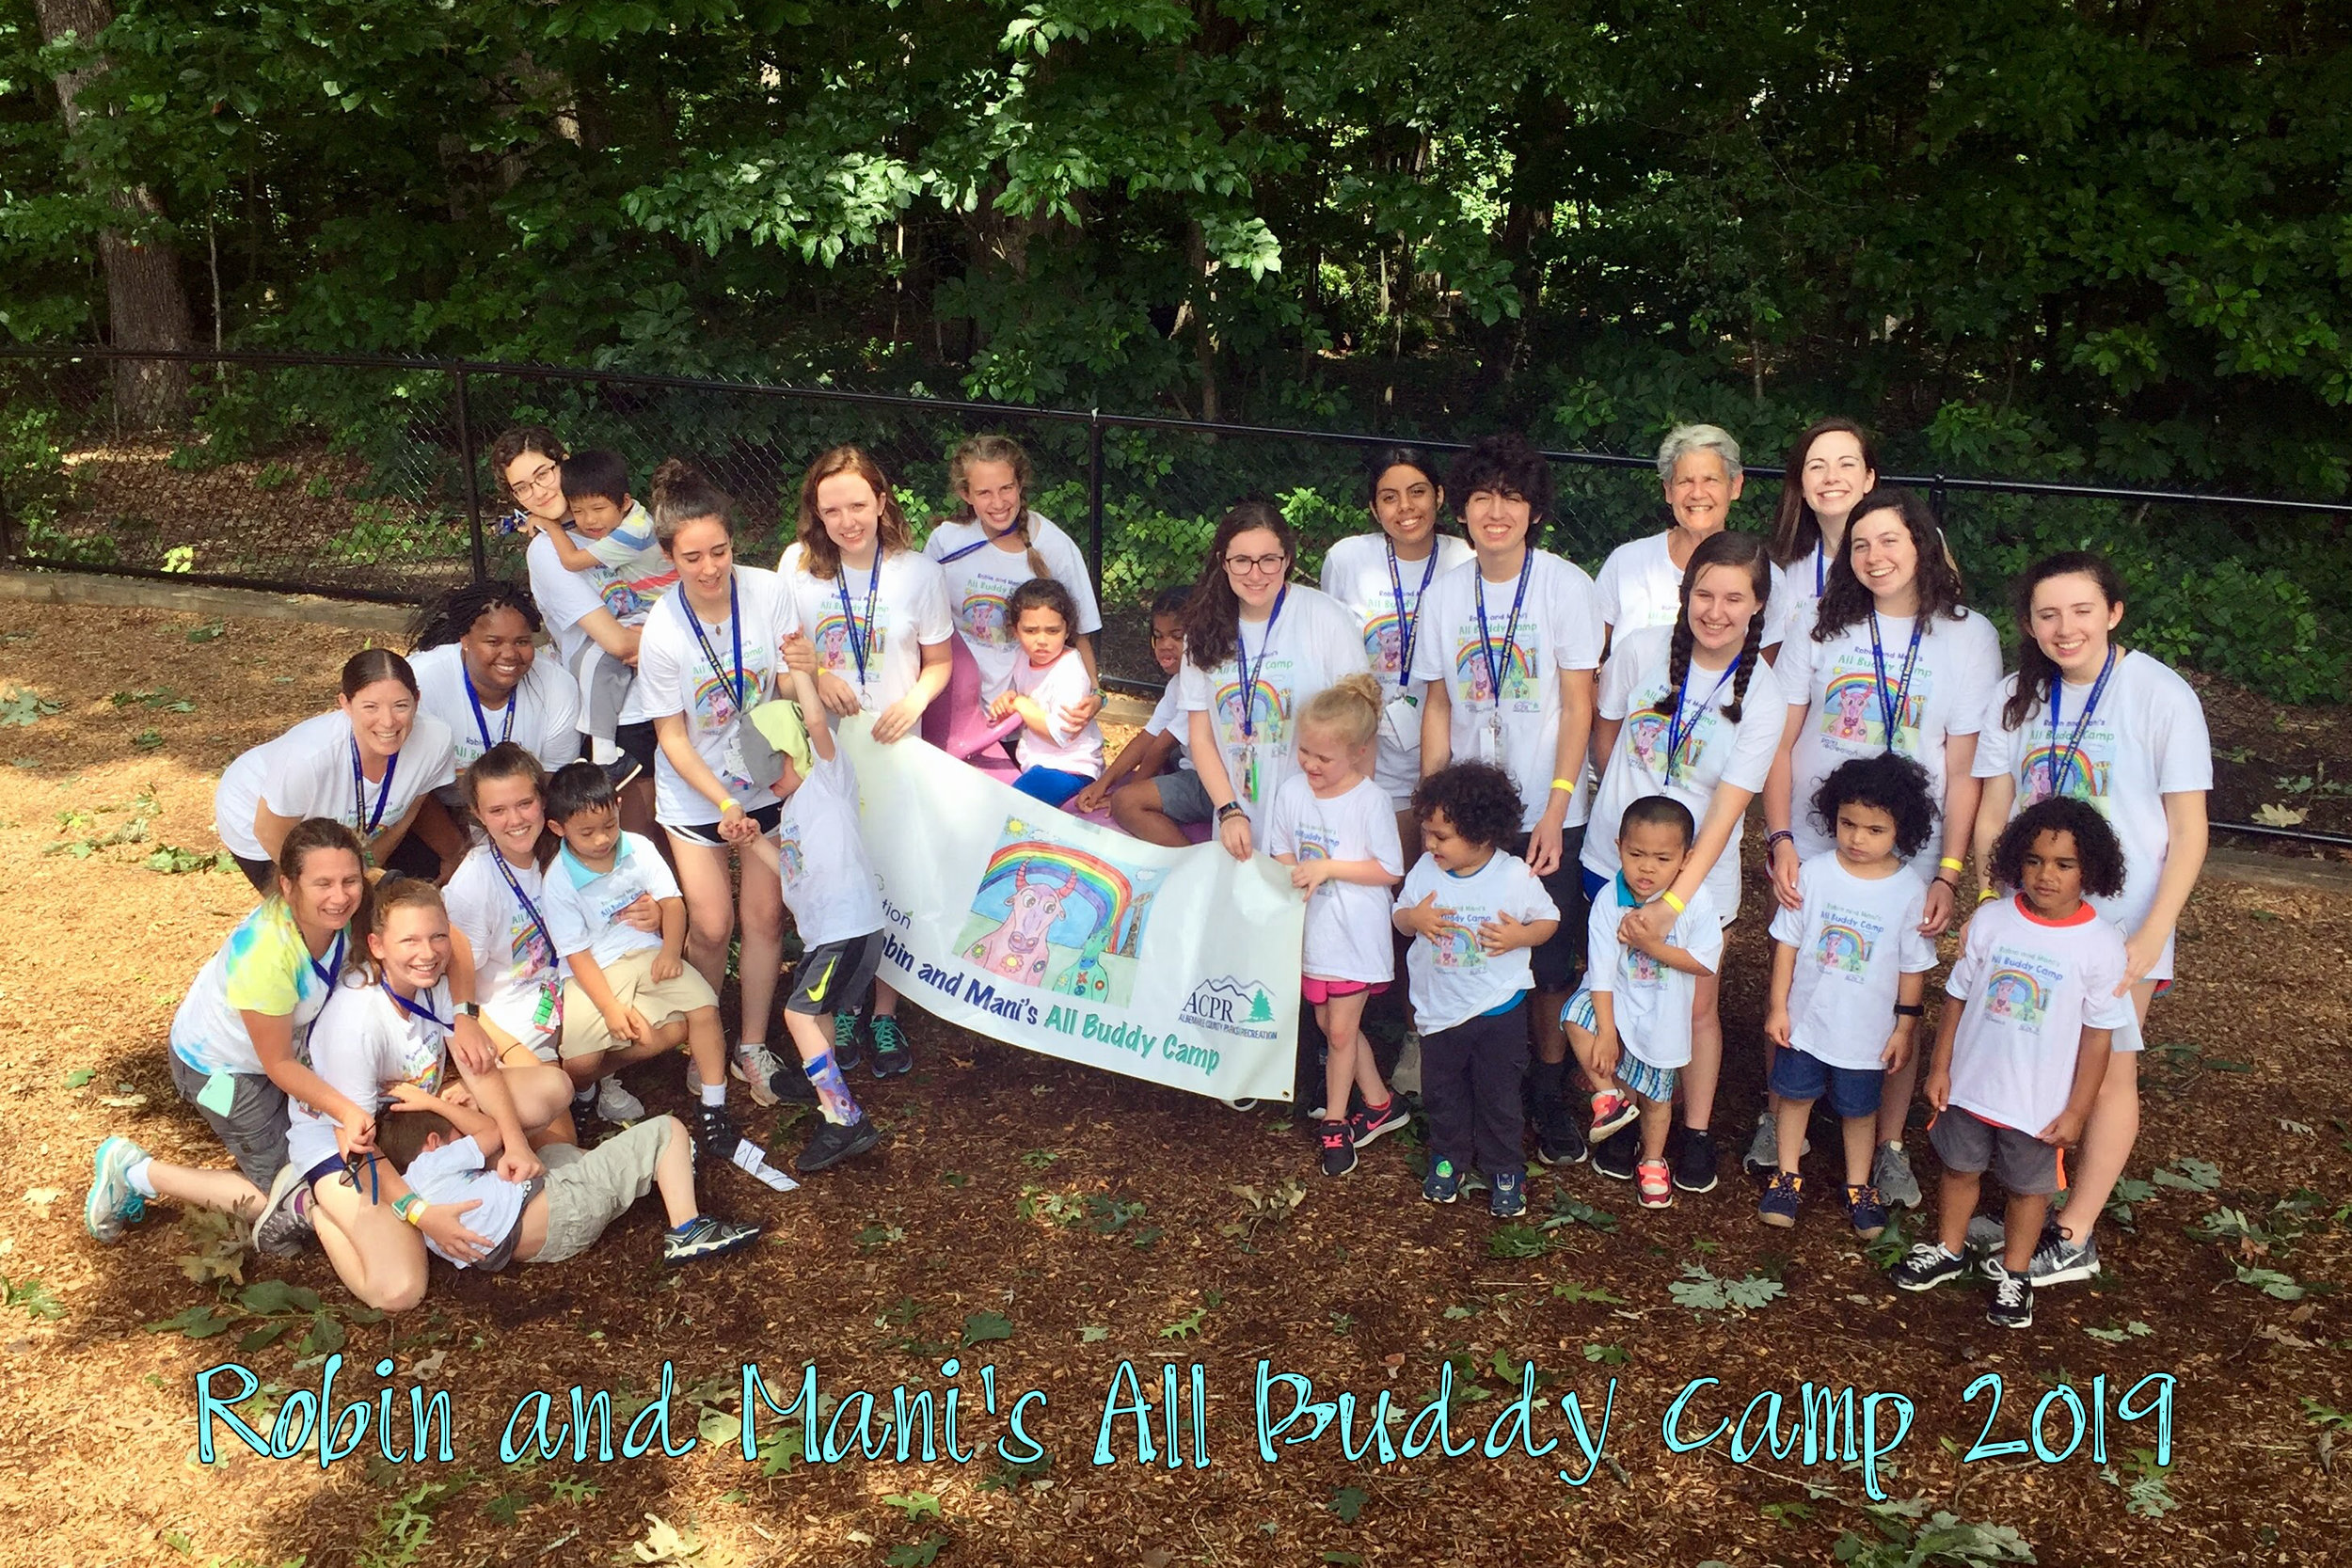 Final Buddy Camp Group Photo 2019 with text.jpg